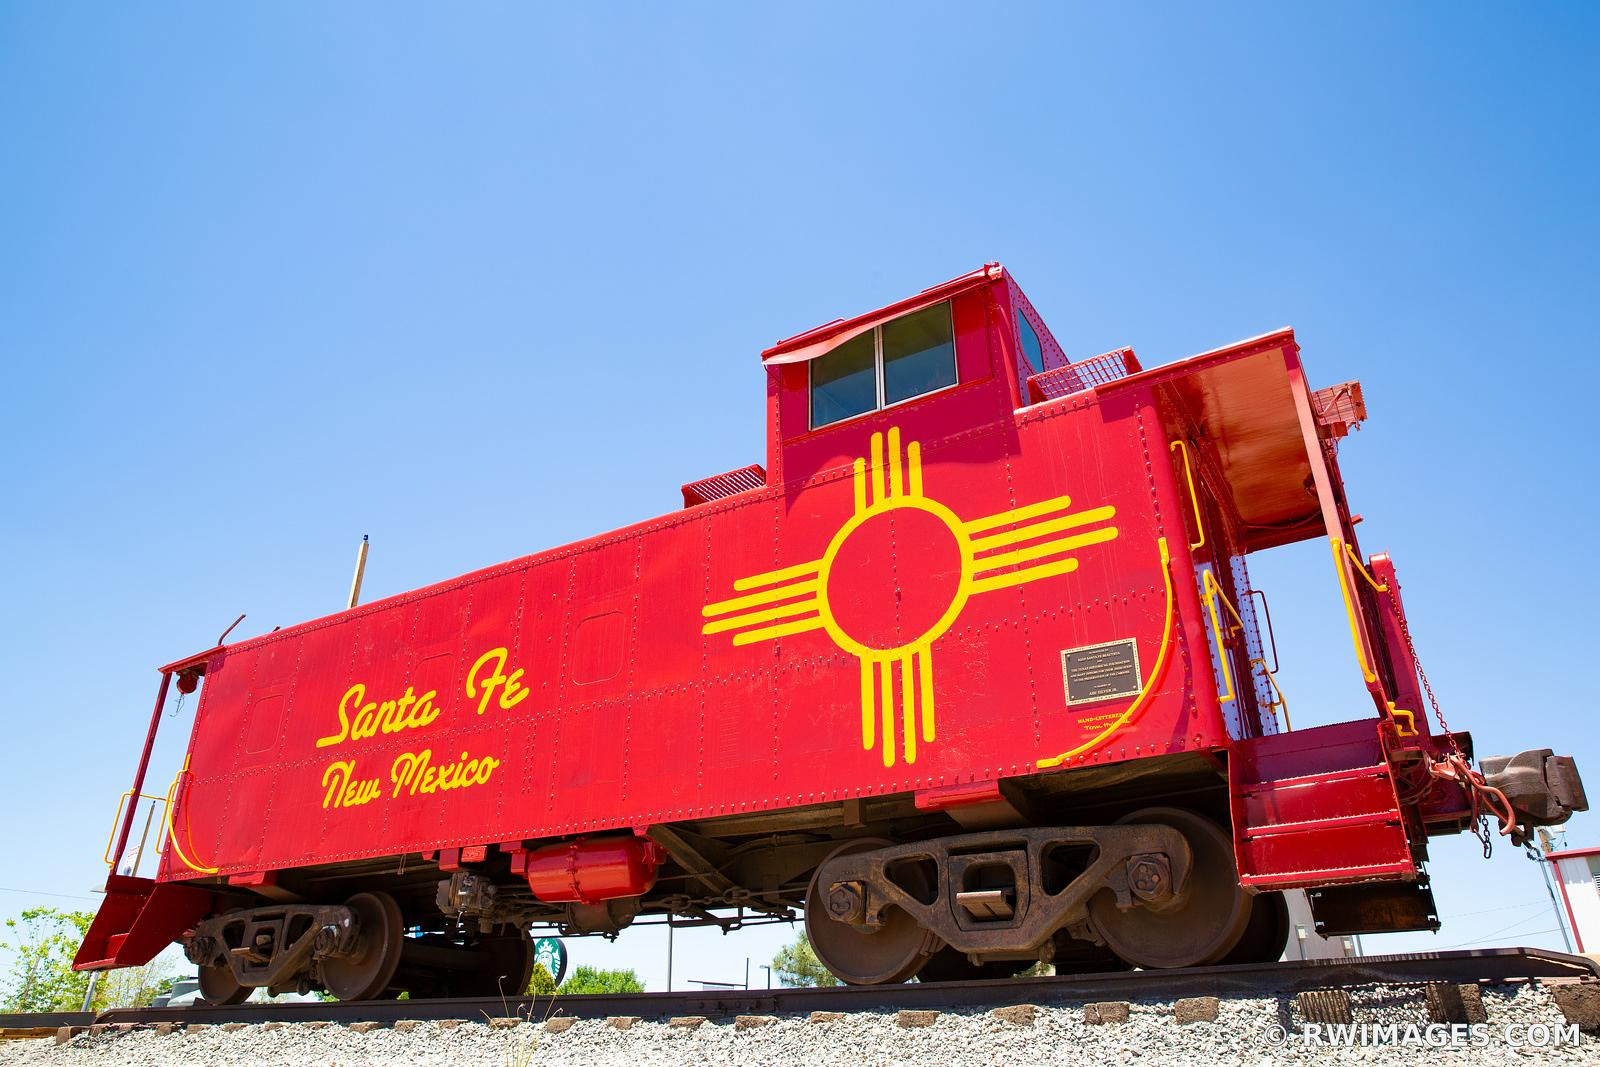 OLD RED CABOOSE TRAIN CAR SANTA FE NEW MEXICO NORTHERN NEW MEXICO